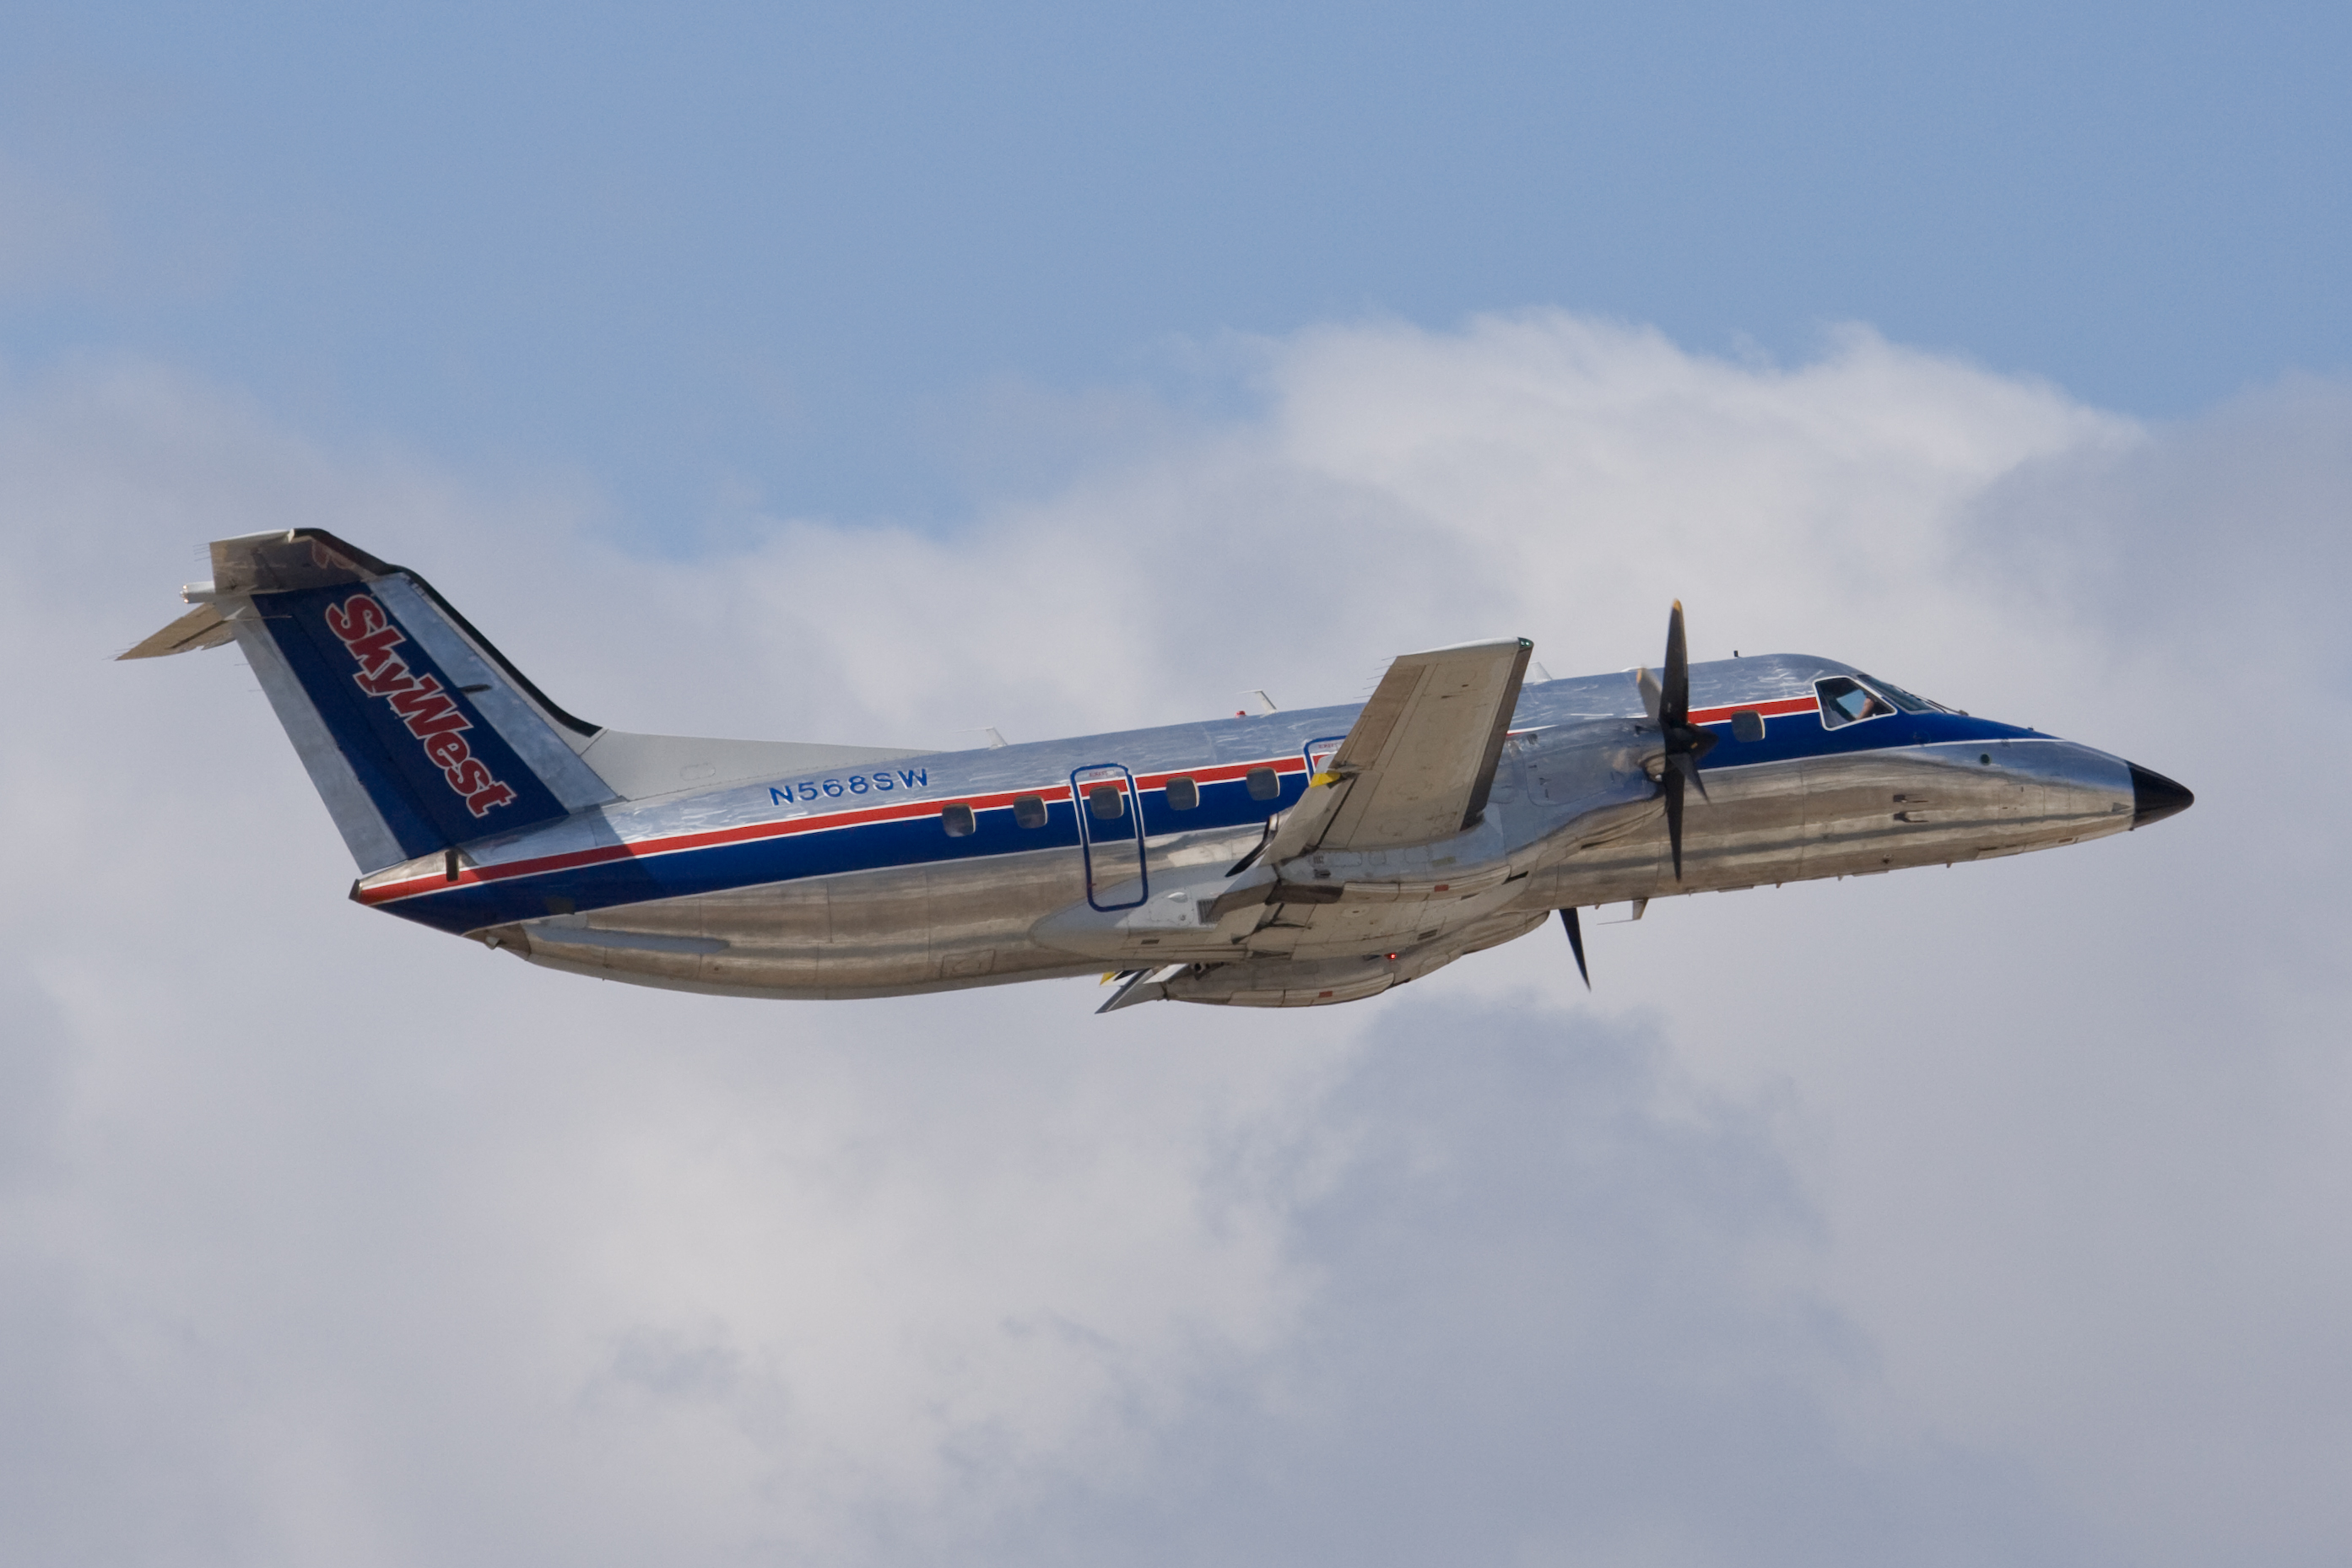 File:SkyWest Embraer EMB-120 (N568SW) taking off from San Jose